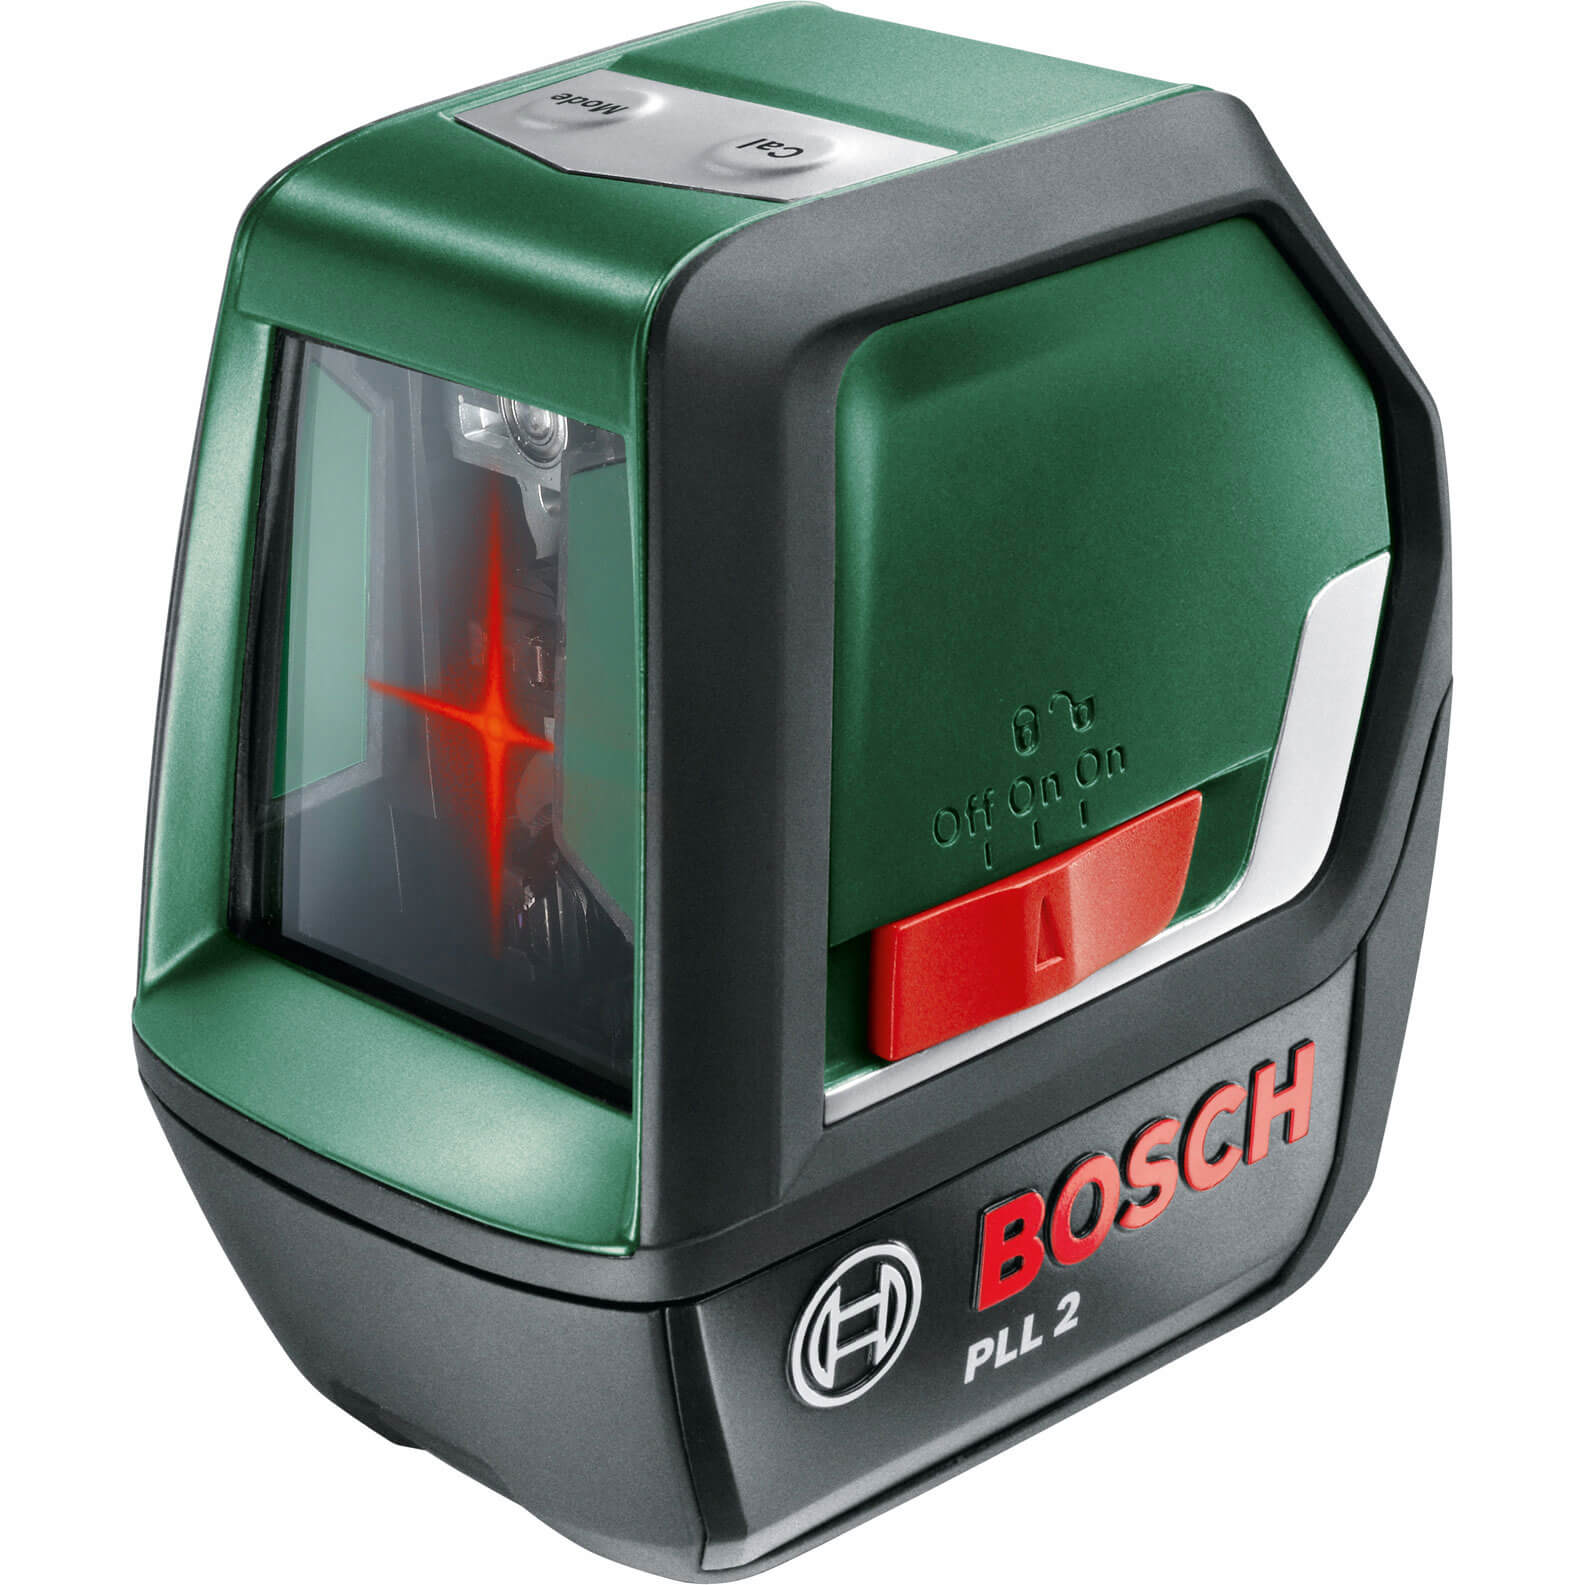 bosch pll 2 cross line laser level. Black Bedroom Furniture Sets. Home Design Ideas